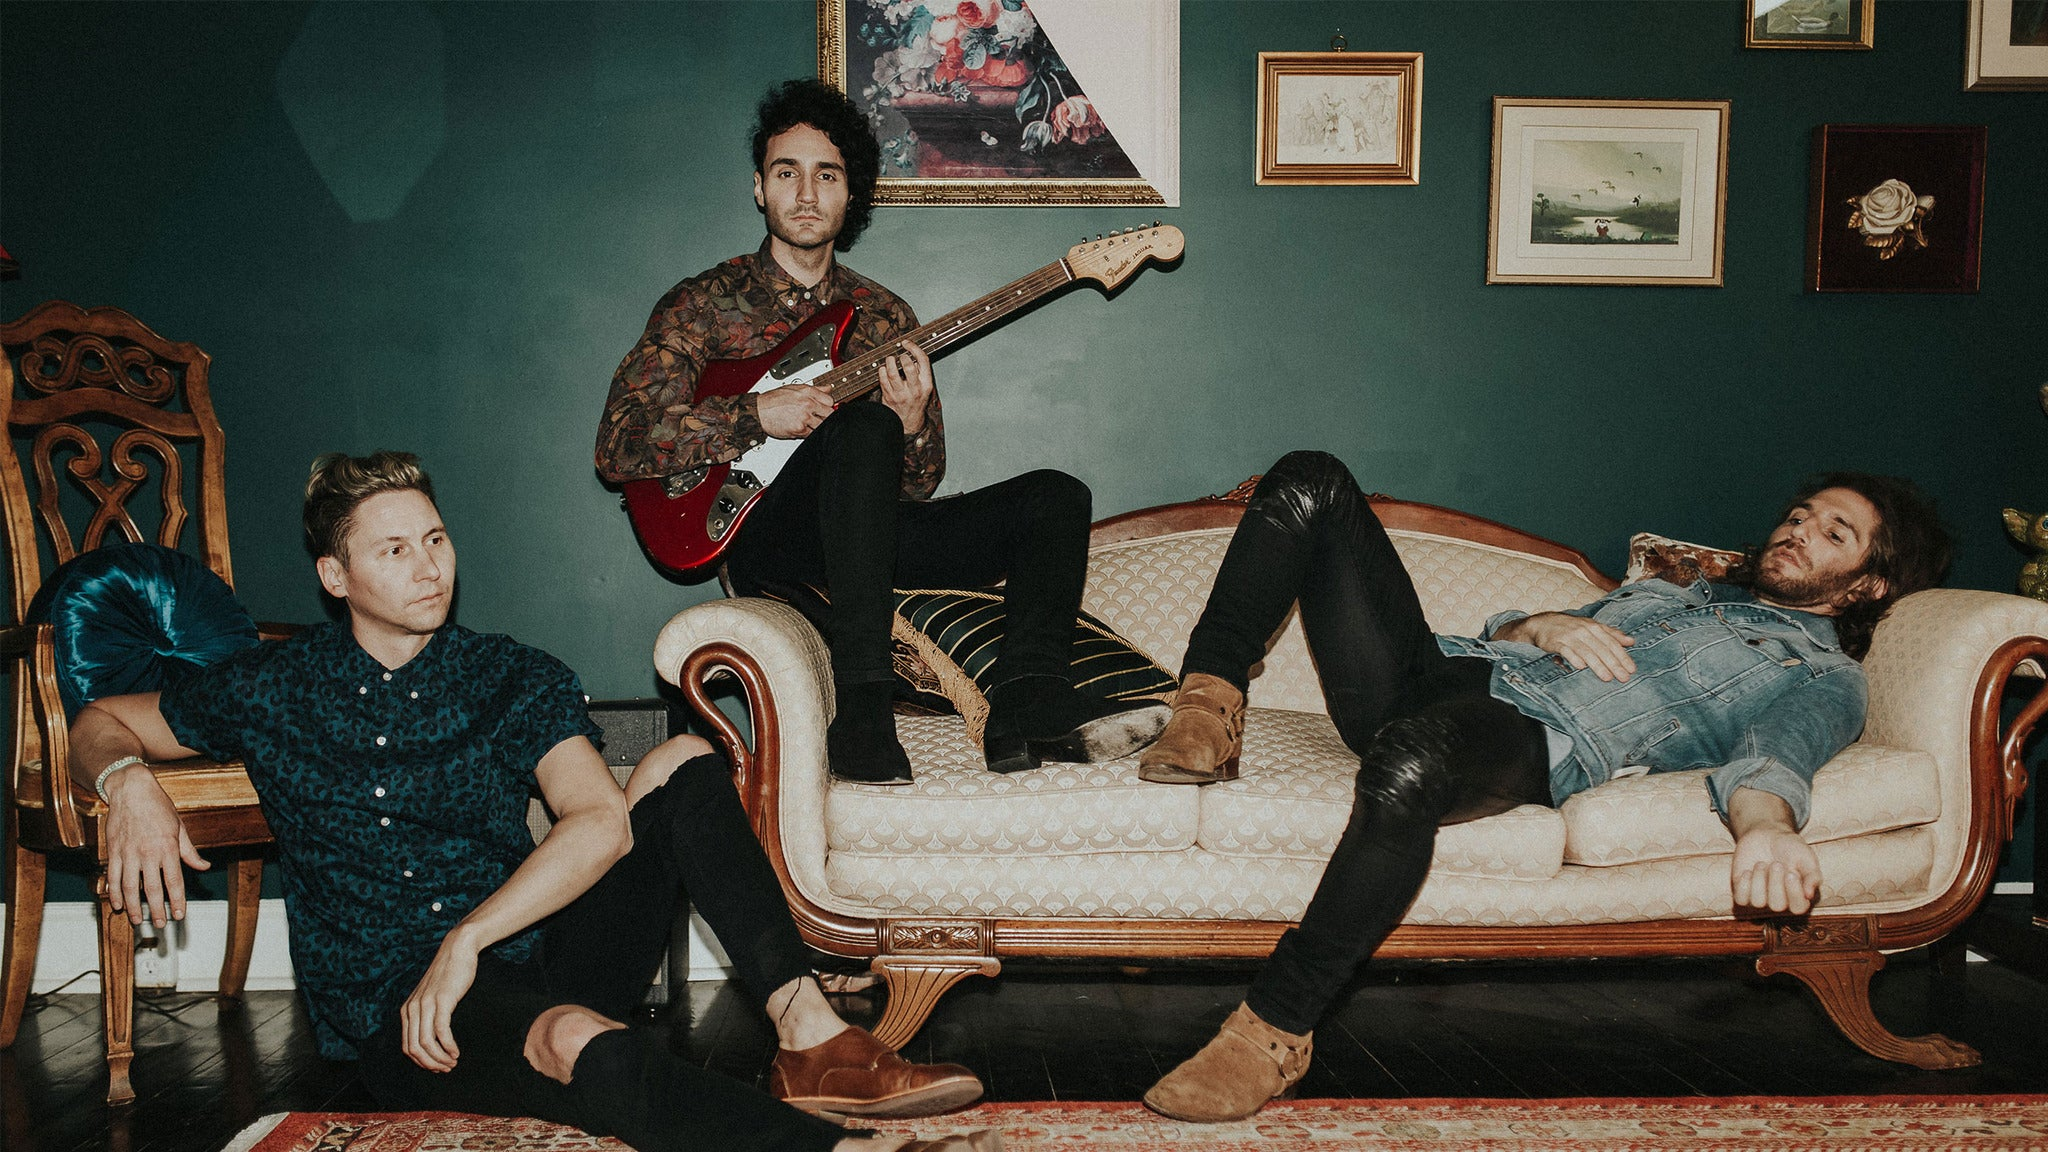 Smallpools pre-sale password for early tickets in Houston